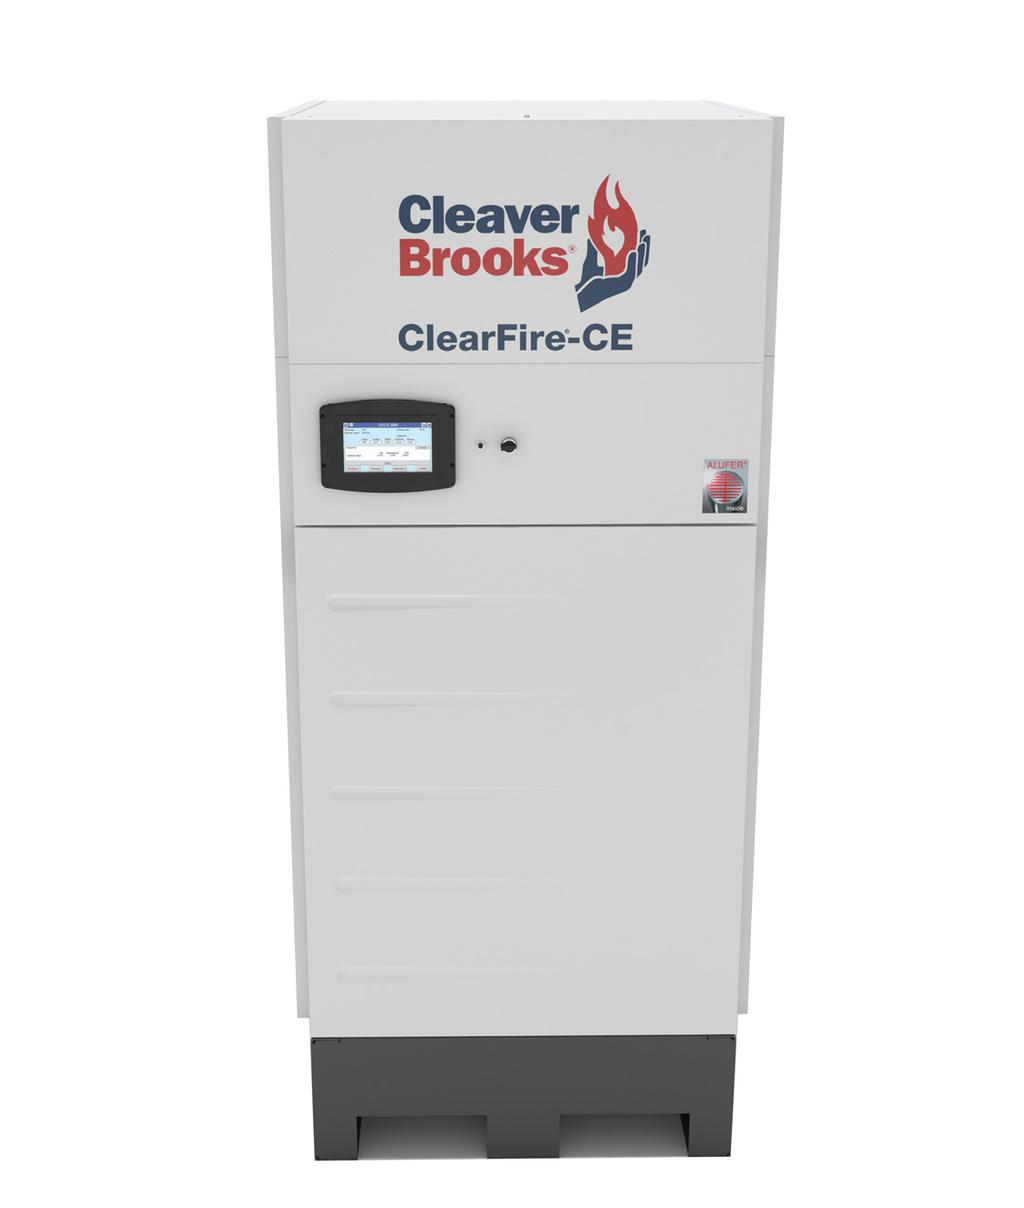 Exceptional Performance with System Engineering Flexibility Boilers The ClearFire -CE condensing boiler leverages the advantages of a primary-variable-flow system in a small footprint, offering